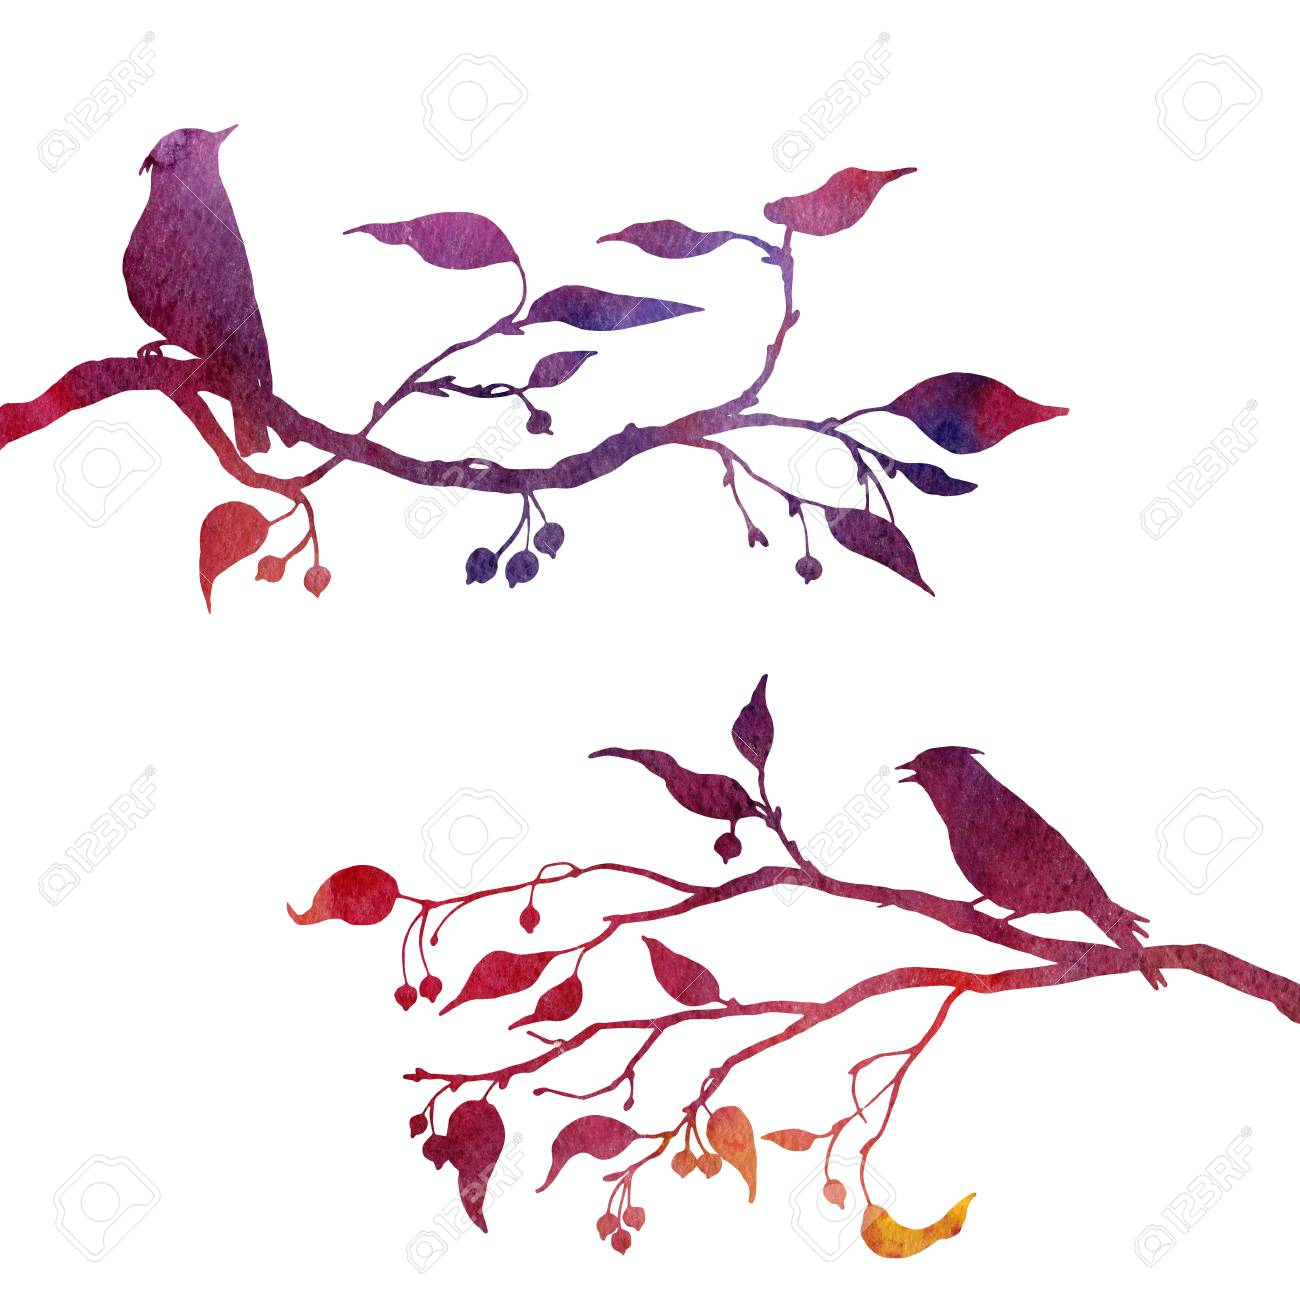 1300x1300 Silhouettes Of Birds At Tree Drawing In Watercolor, Hand Drawn